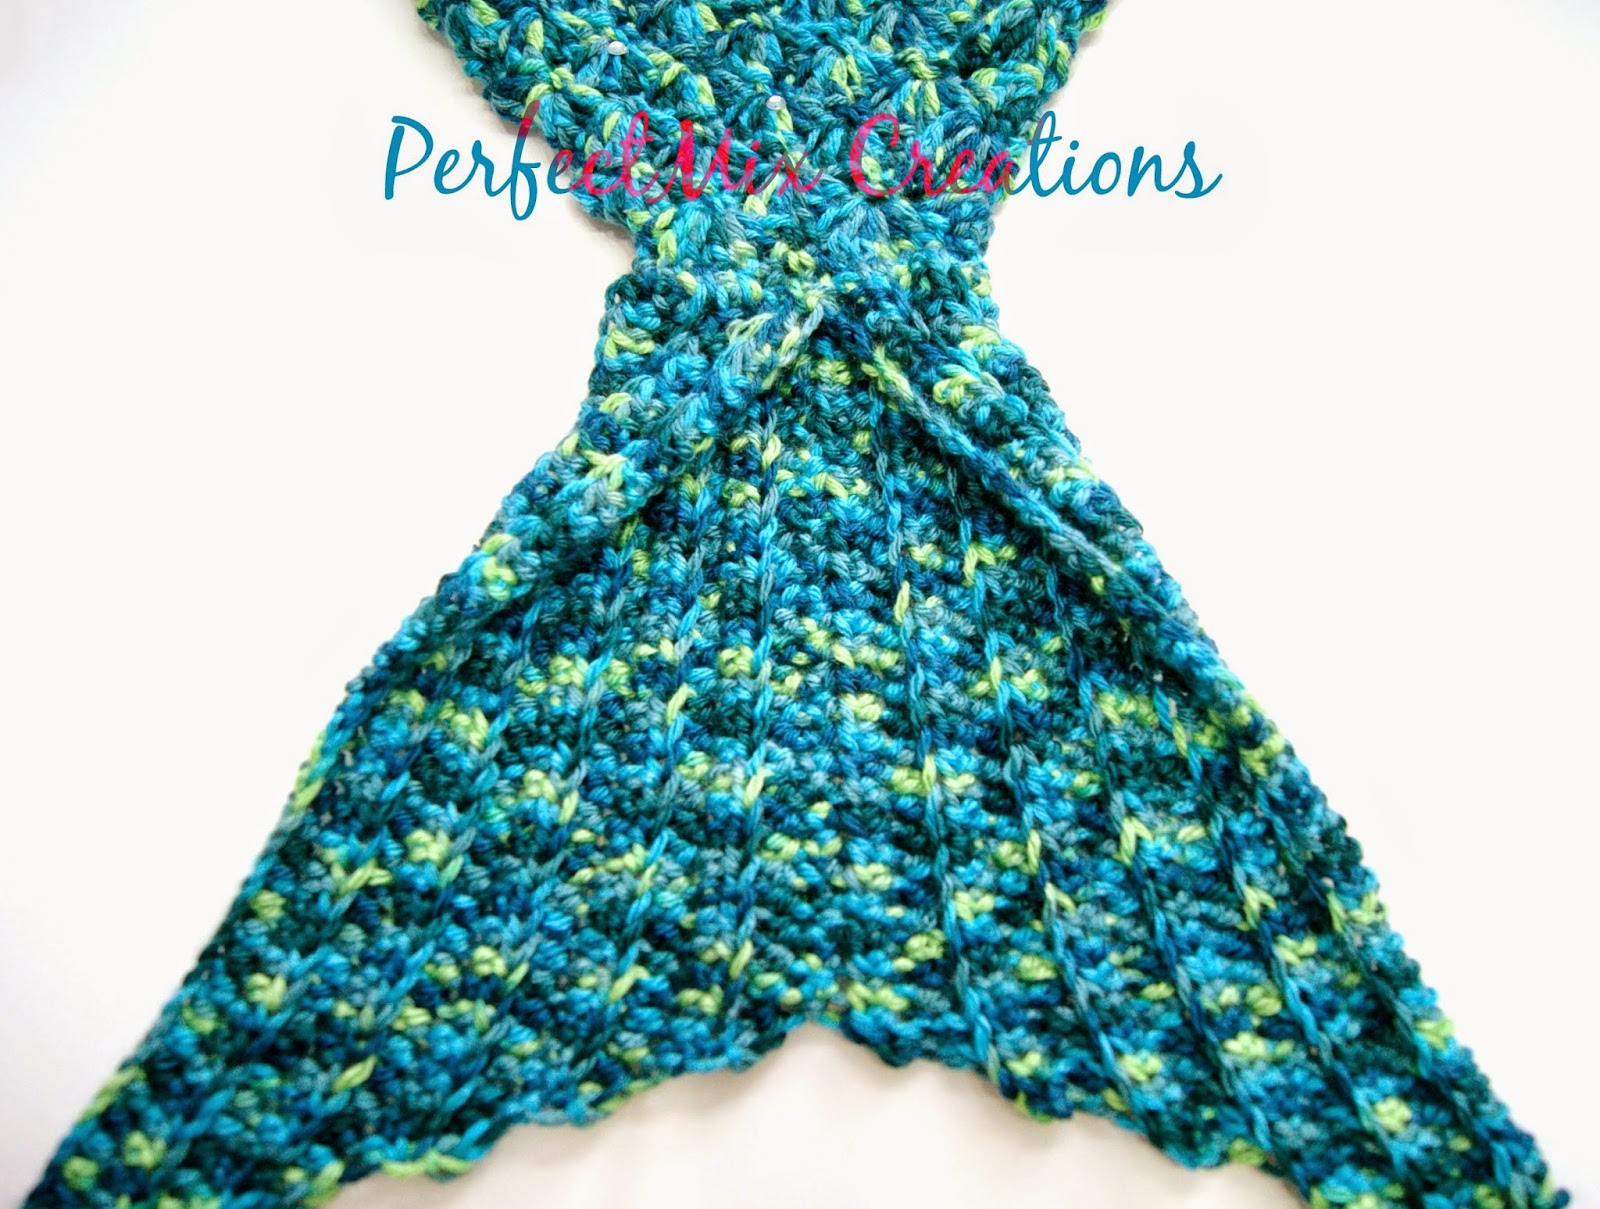 Mixin it up with DaPerfectMix: Crochet Mermaid Tail Fin ...